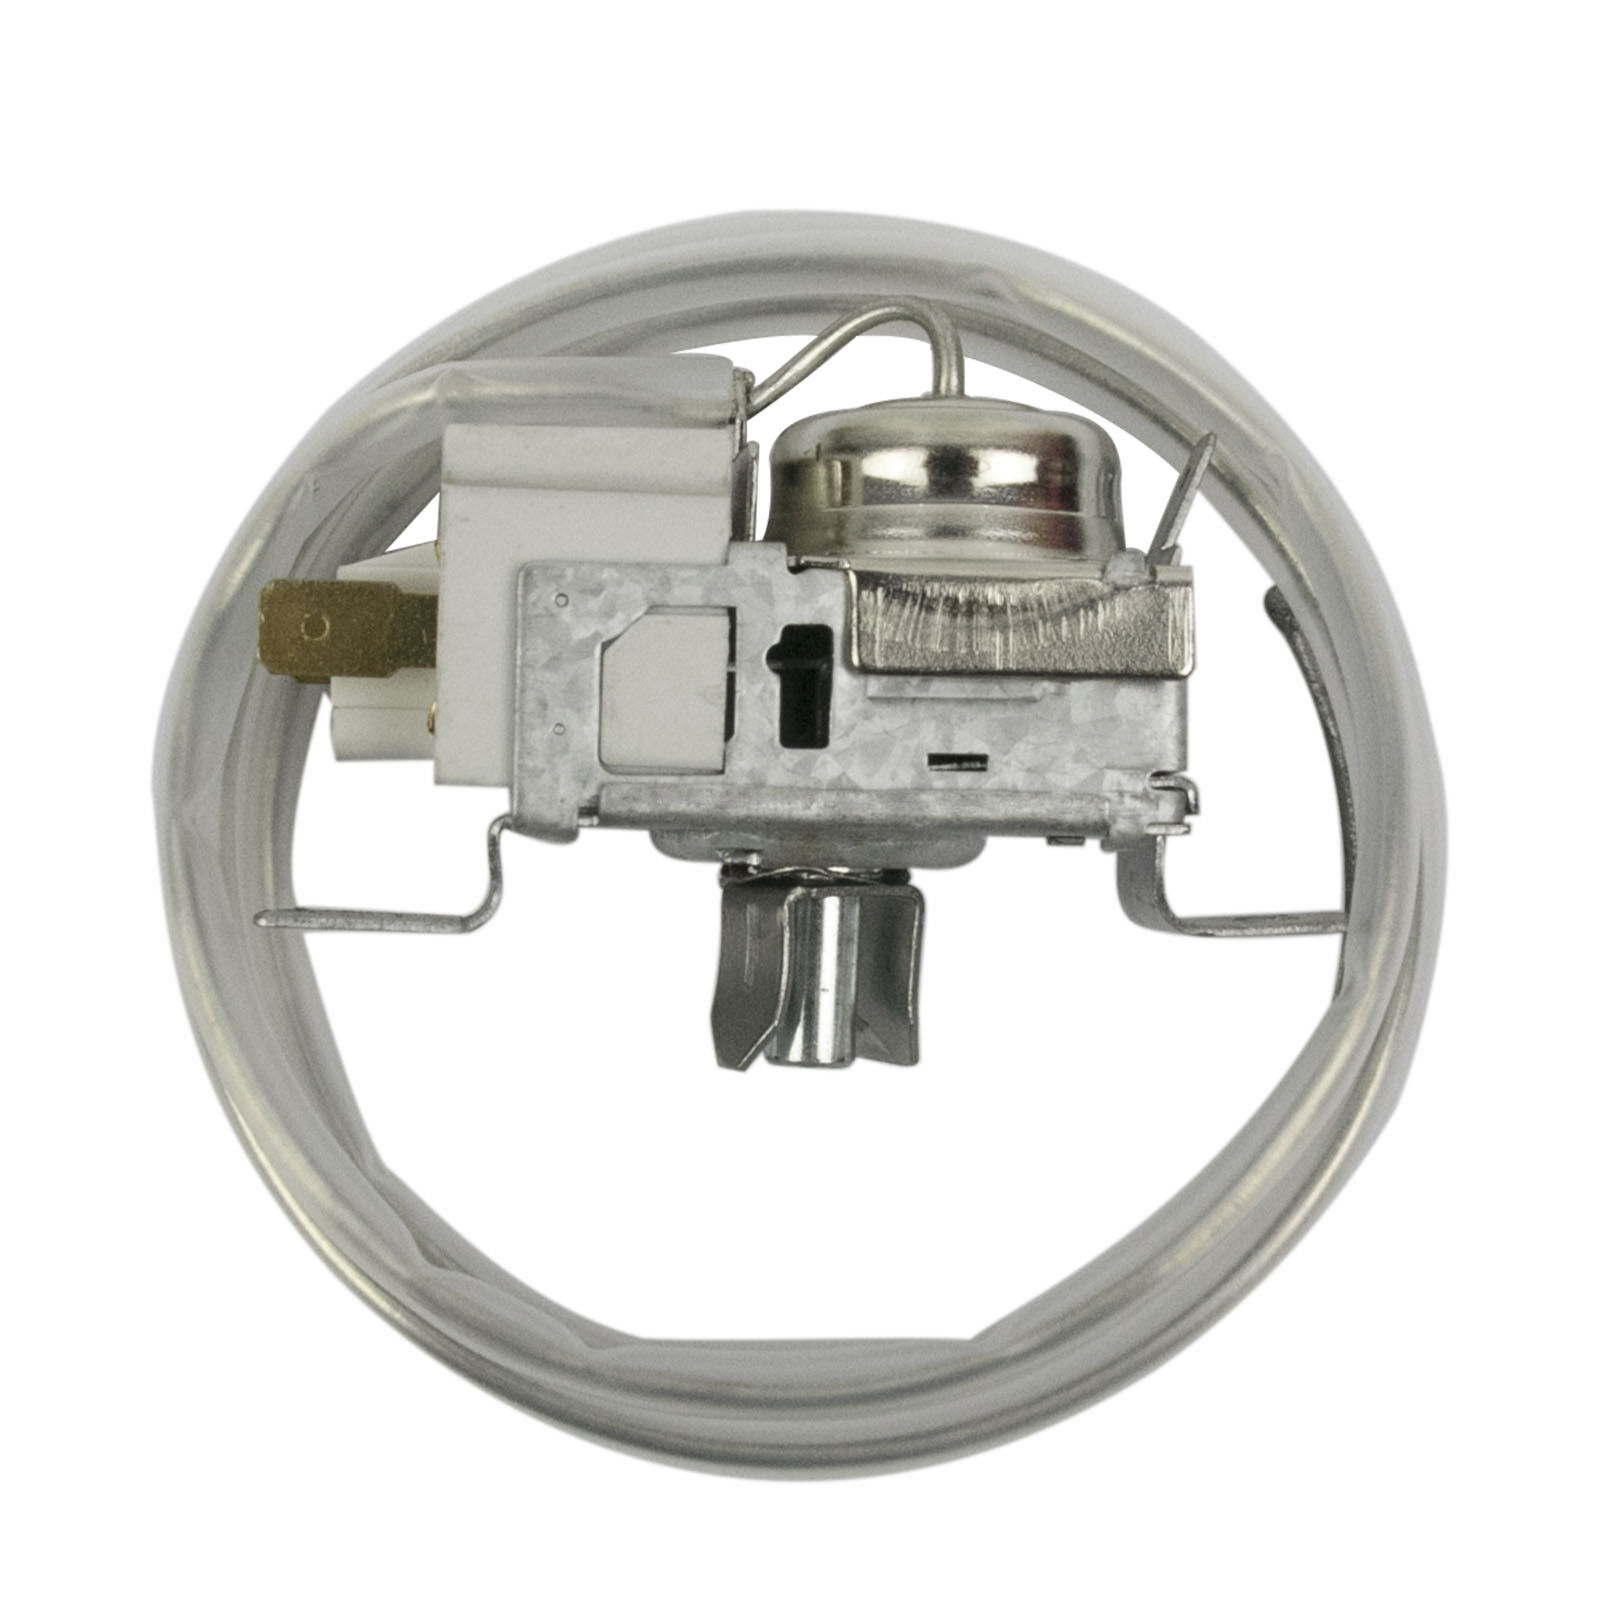 NEW REFRIGERATOR COLD CONTROL THERMOSTAT FOR WHIRLPOOL KENMORE ROPER on